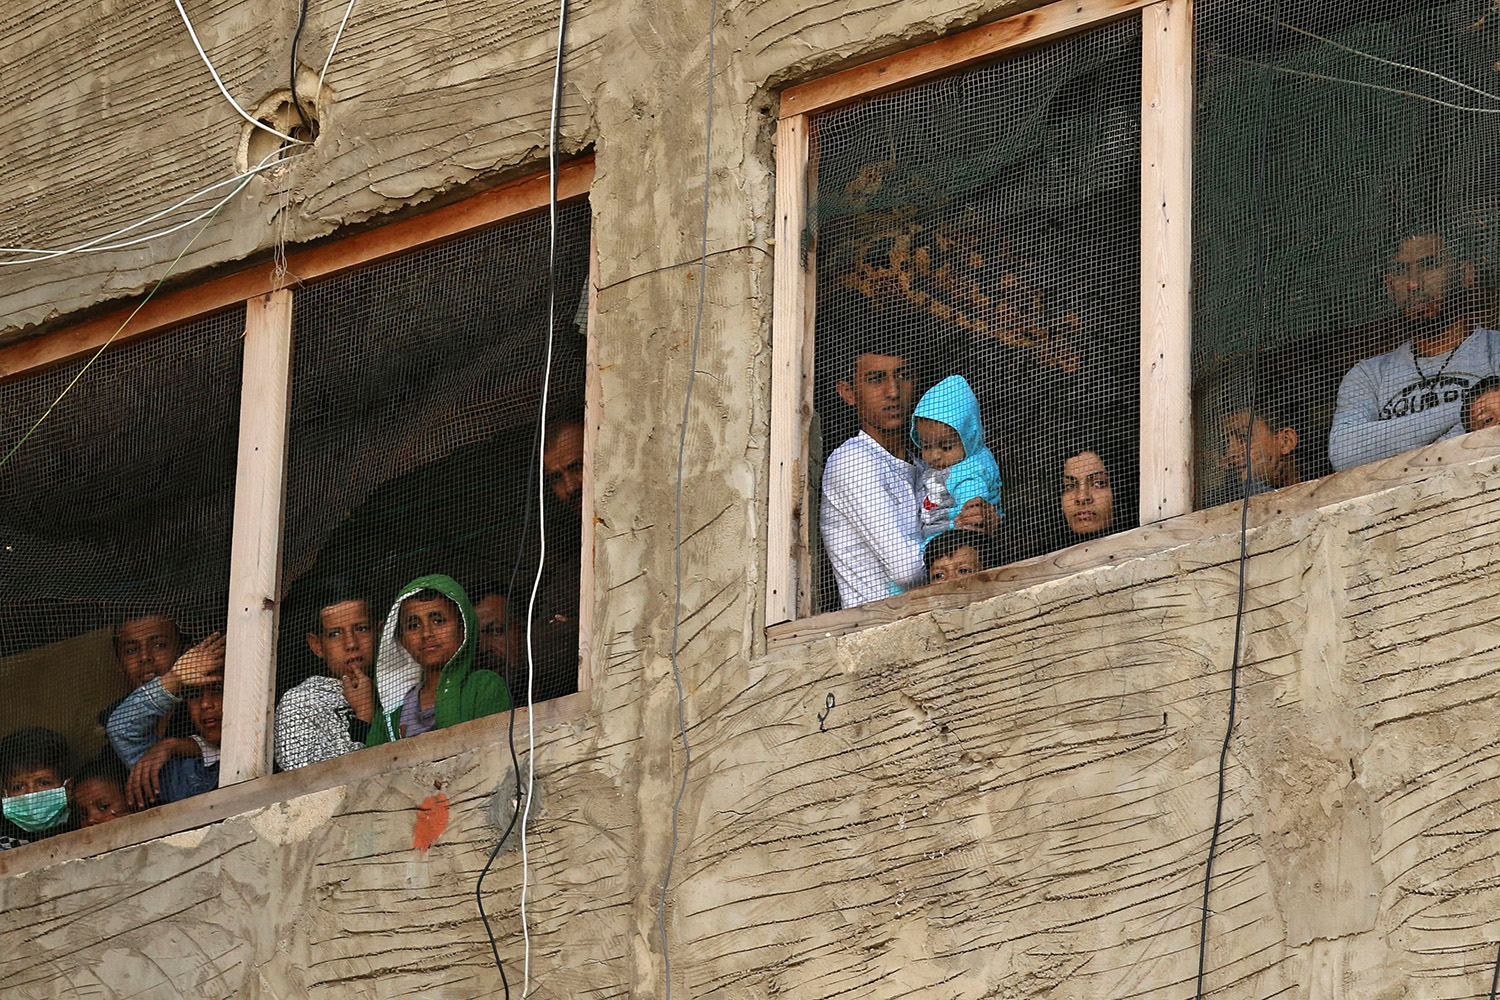 Syrian refugees look out the window of a building under construction—which they have been using as a shelter—in the city of Sidon, southern Lebanon, on March 17. MAHMOUD ZAYYAT/AFP via Getty Images